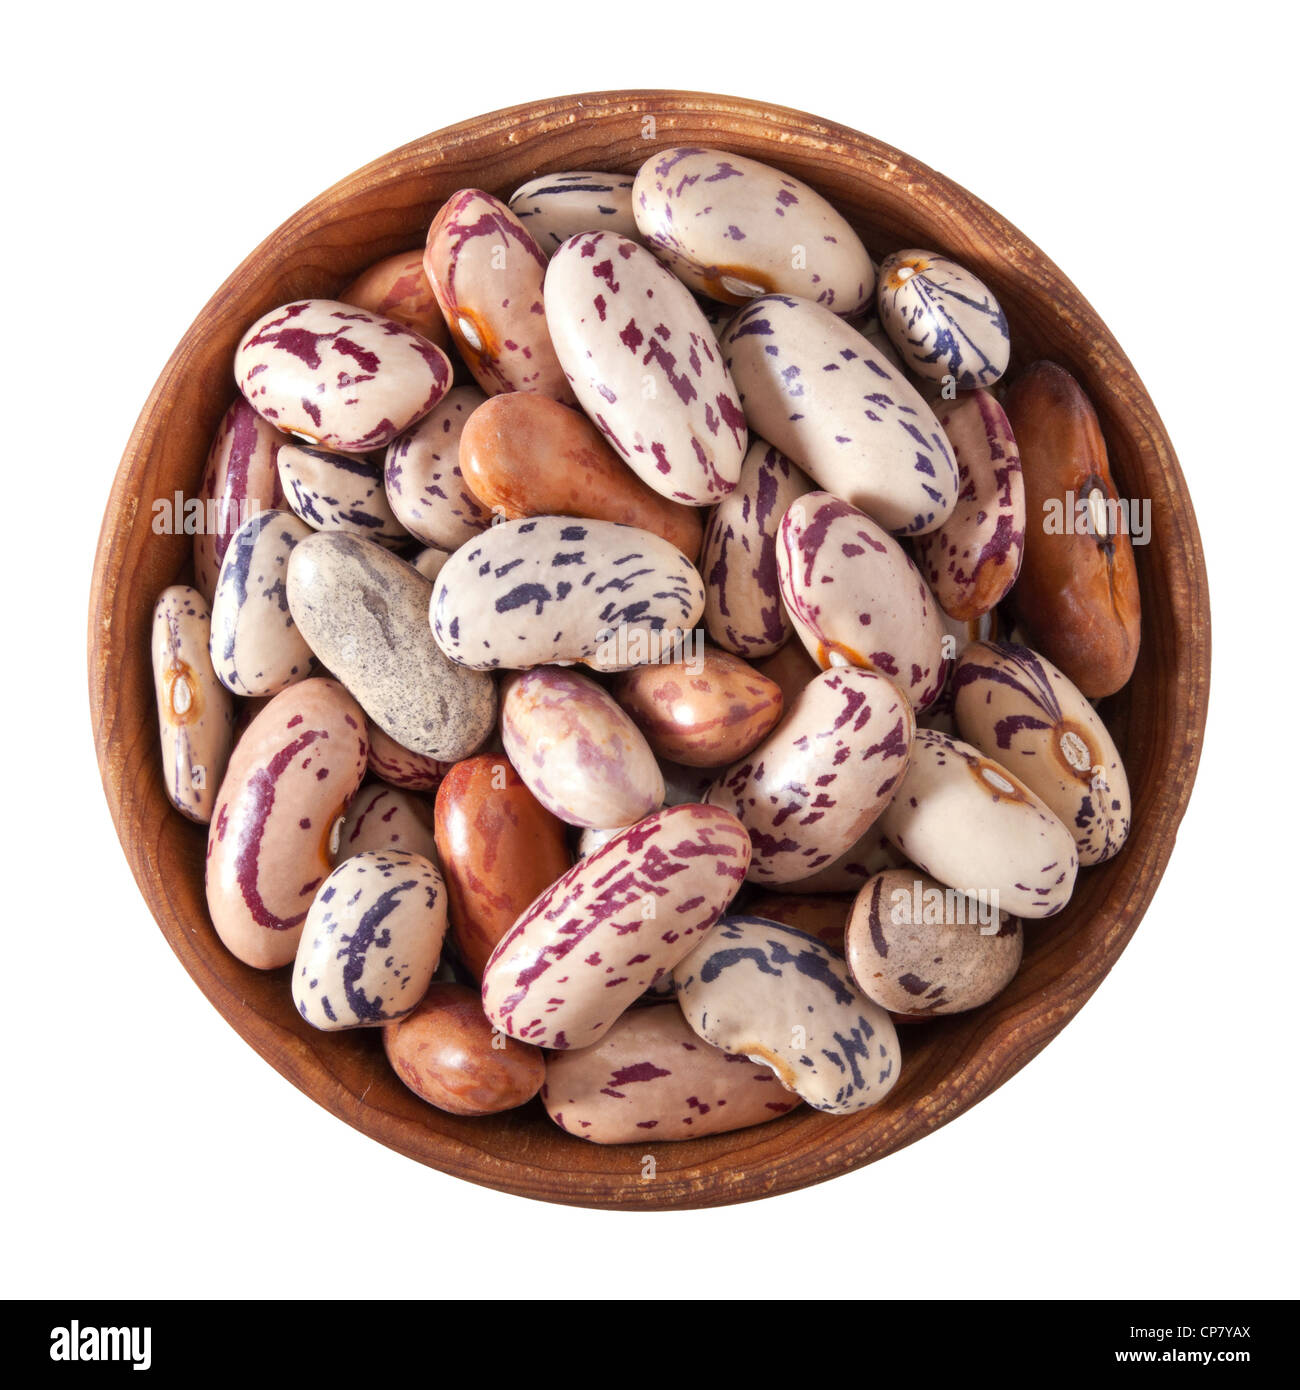 wooden bowl full of speckled beans isolated on white background - Stock Image